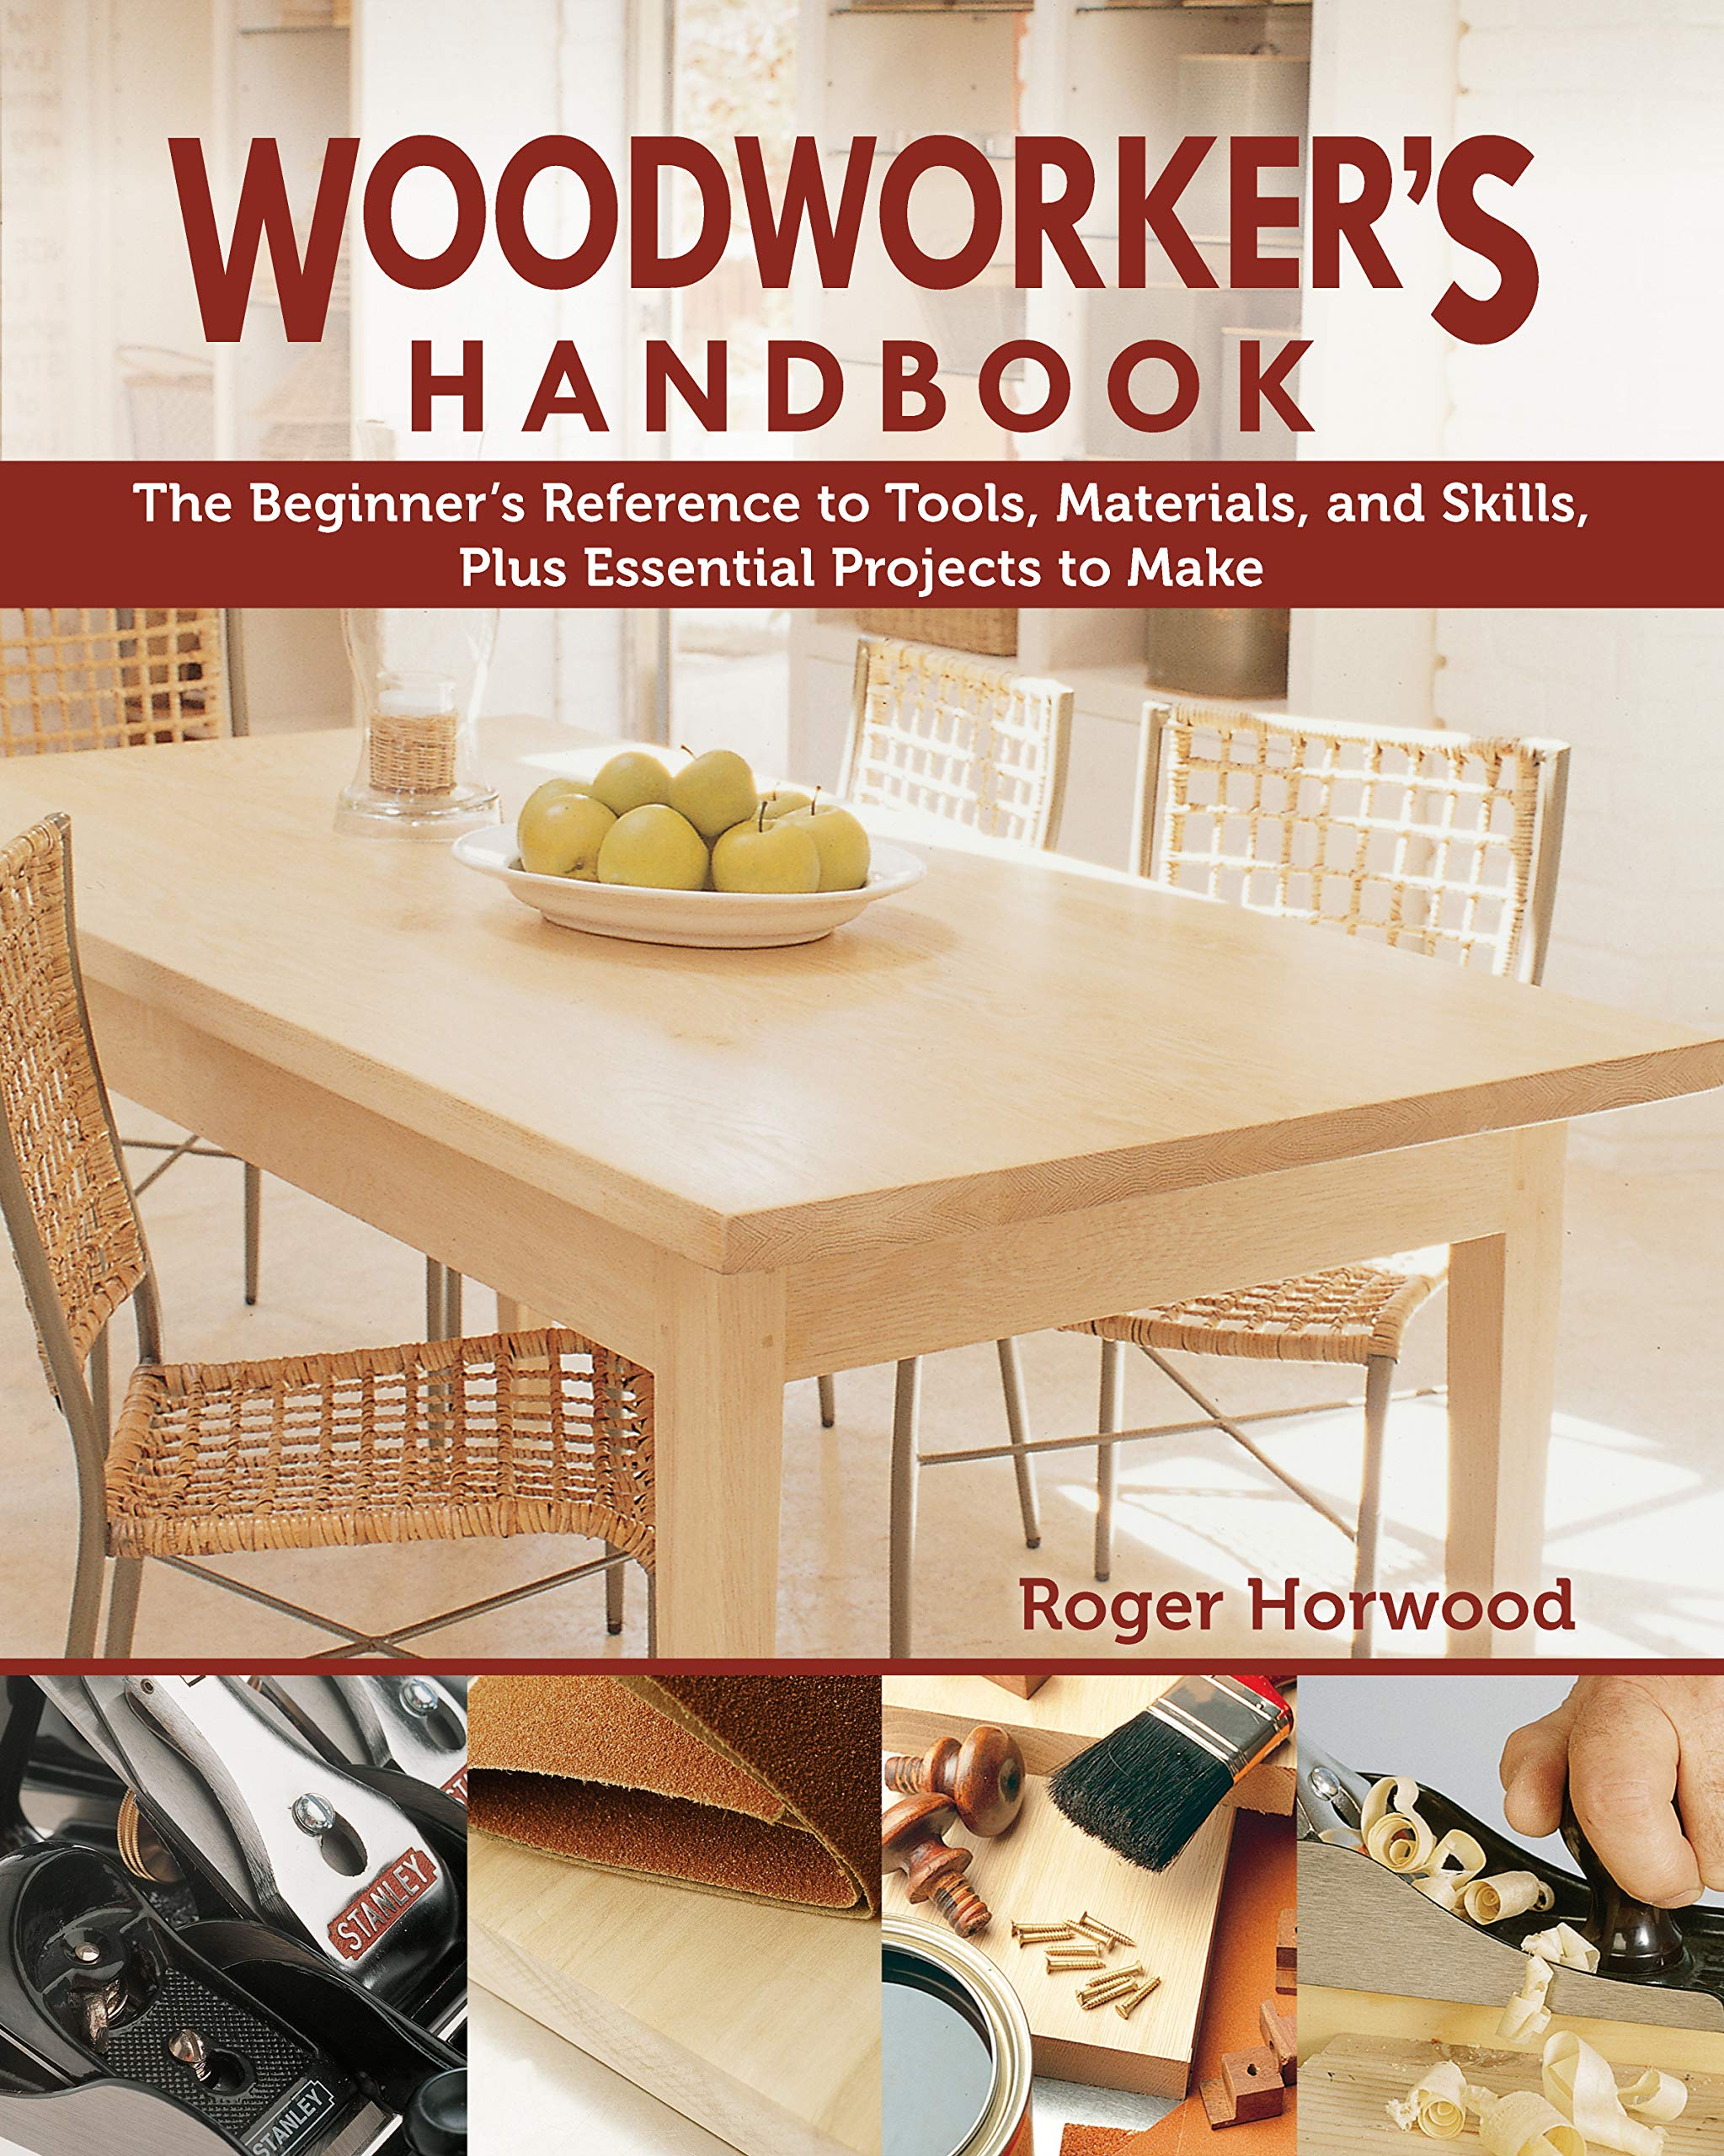 Woodworker S Handbook The Beginner S Reference To Tools Materials And Skills Plus Essential Projects To Make Fox Chapel Publishing Beginner Friendly Diy Guide With 5 Step By Step Projects Horwood Roger 9781497100657 Amazon Com Books